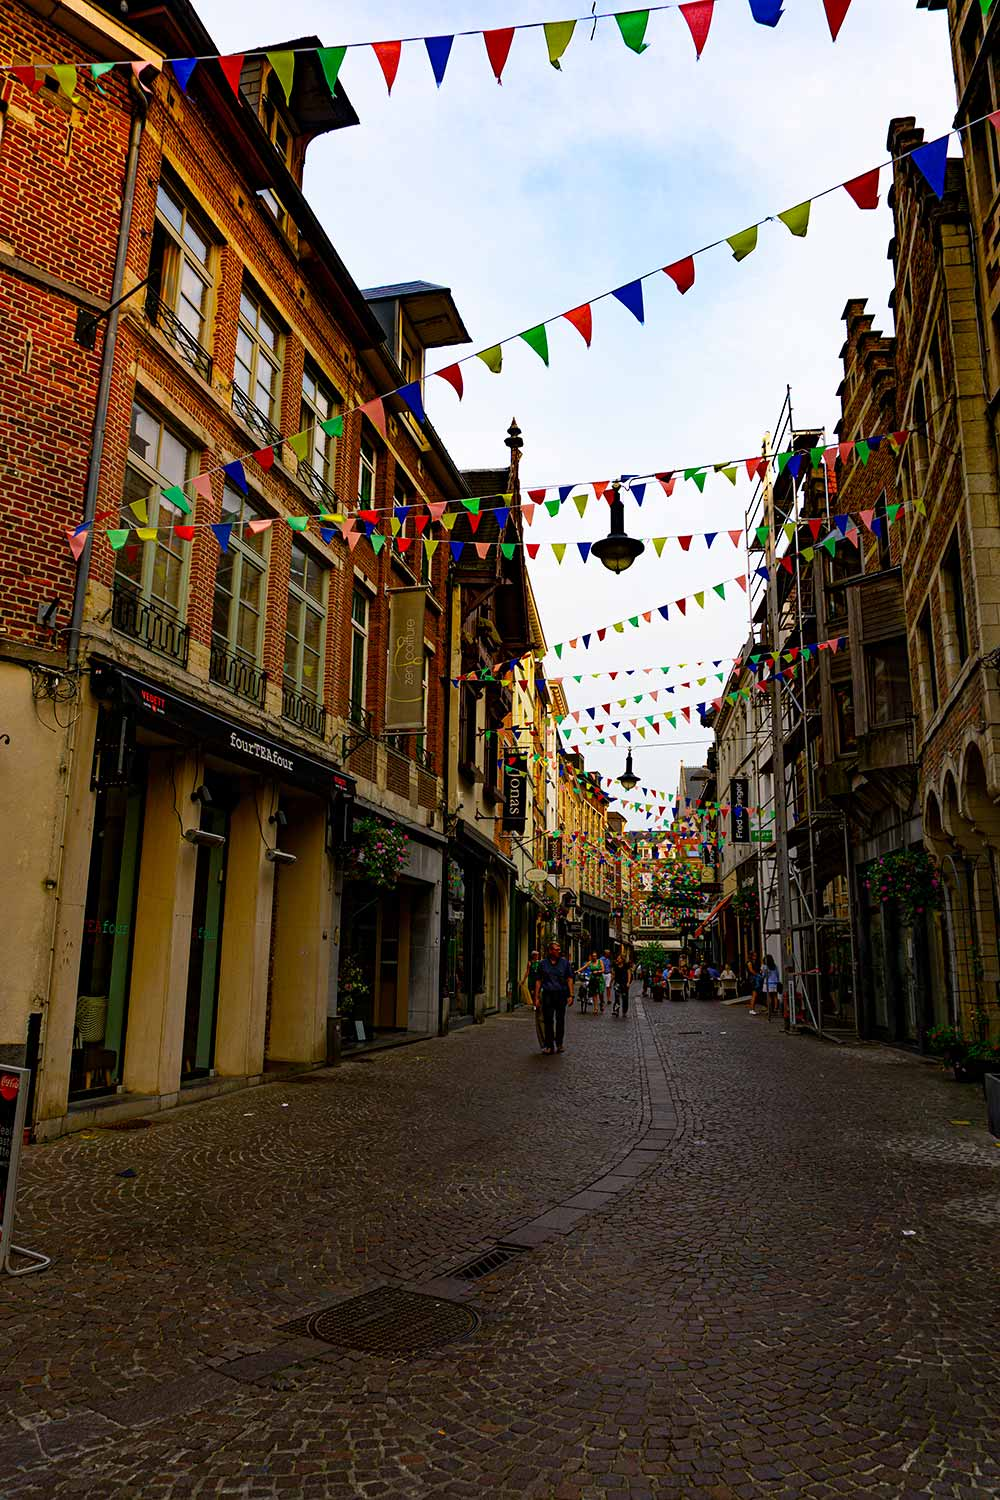 A street Leuven, Belgium lined with brick buildings with flags hanging between the buildings.